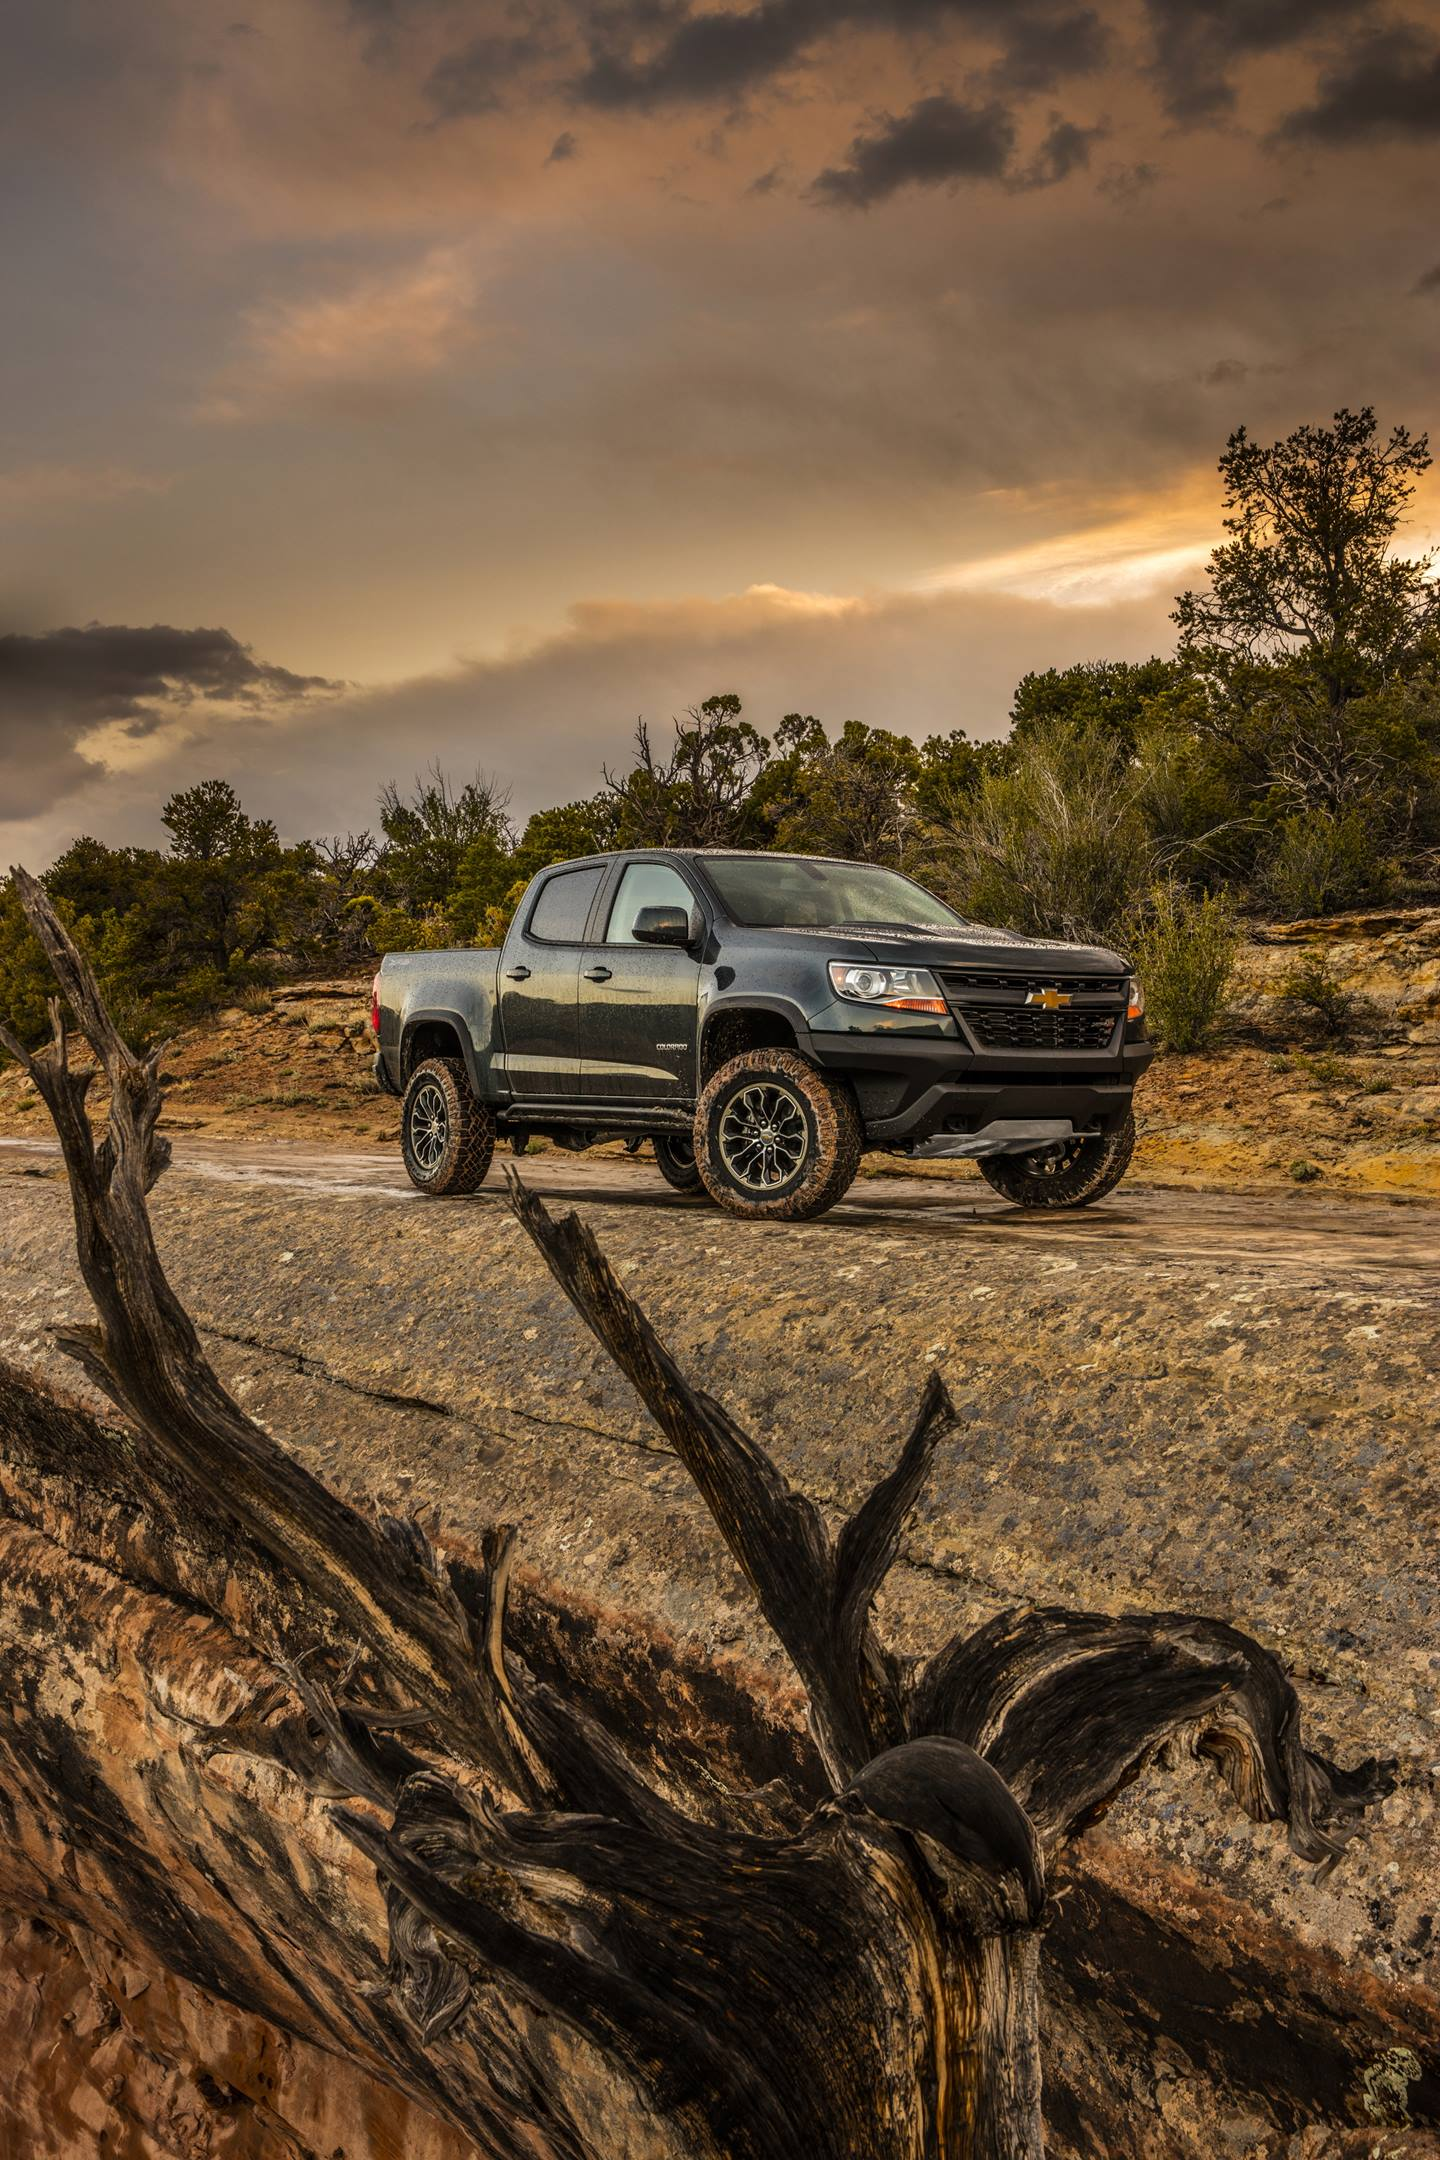 Green 2017 Chevrolet Colorado ZR2 at sunset